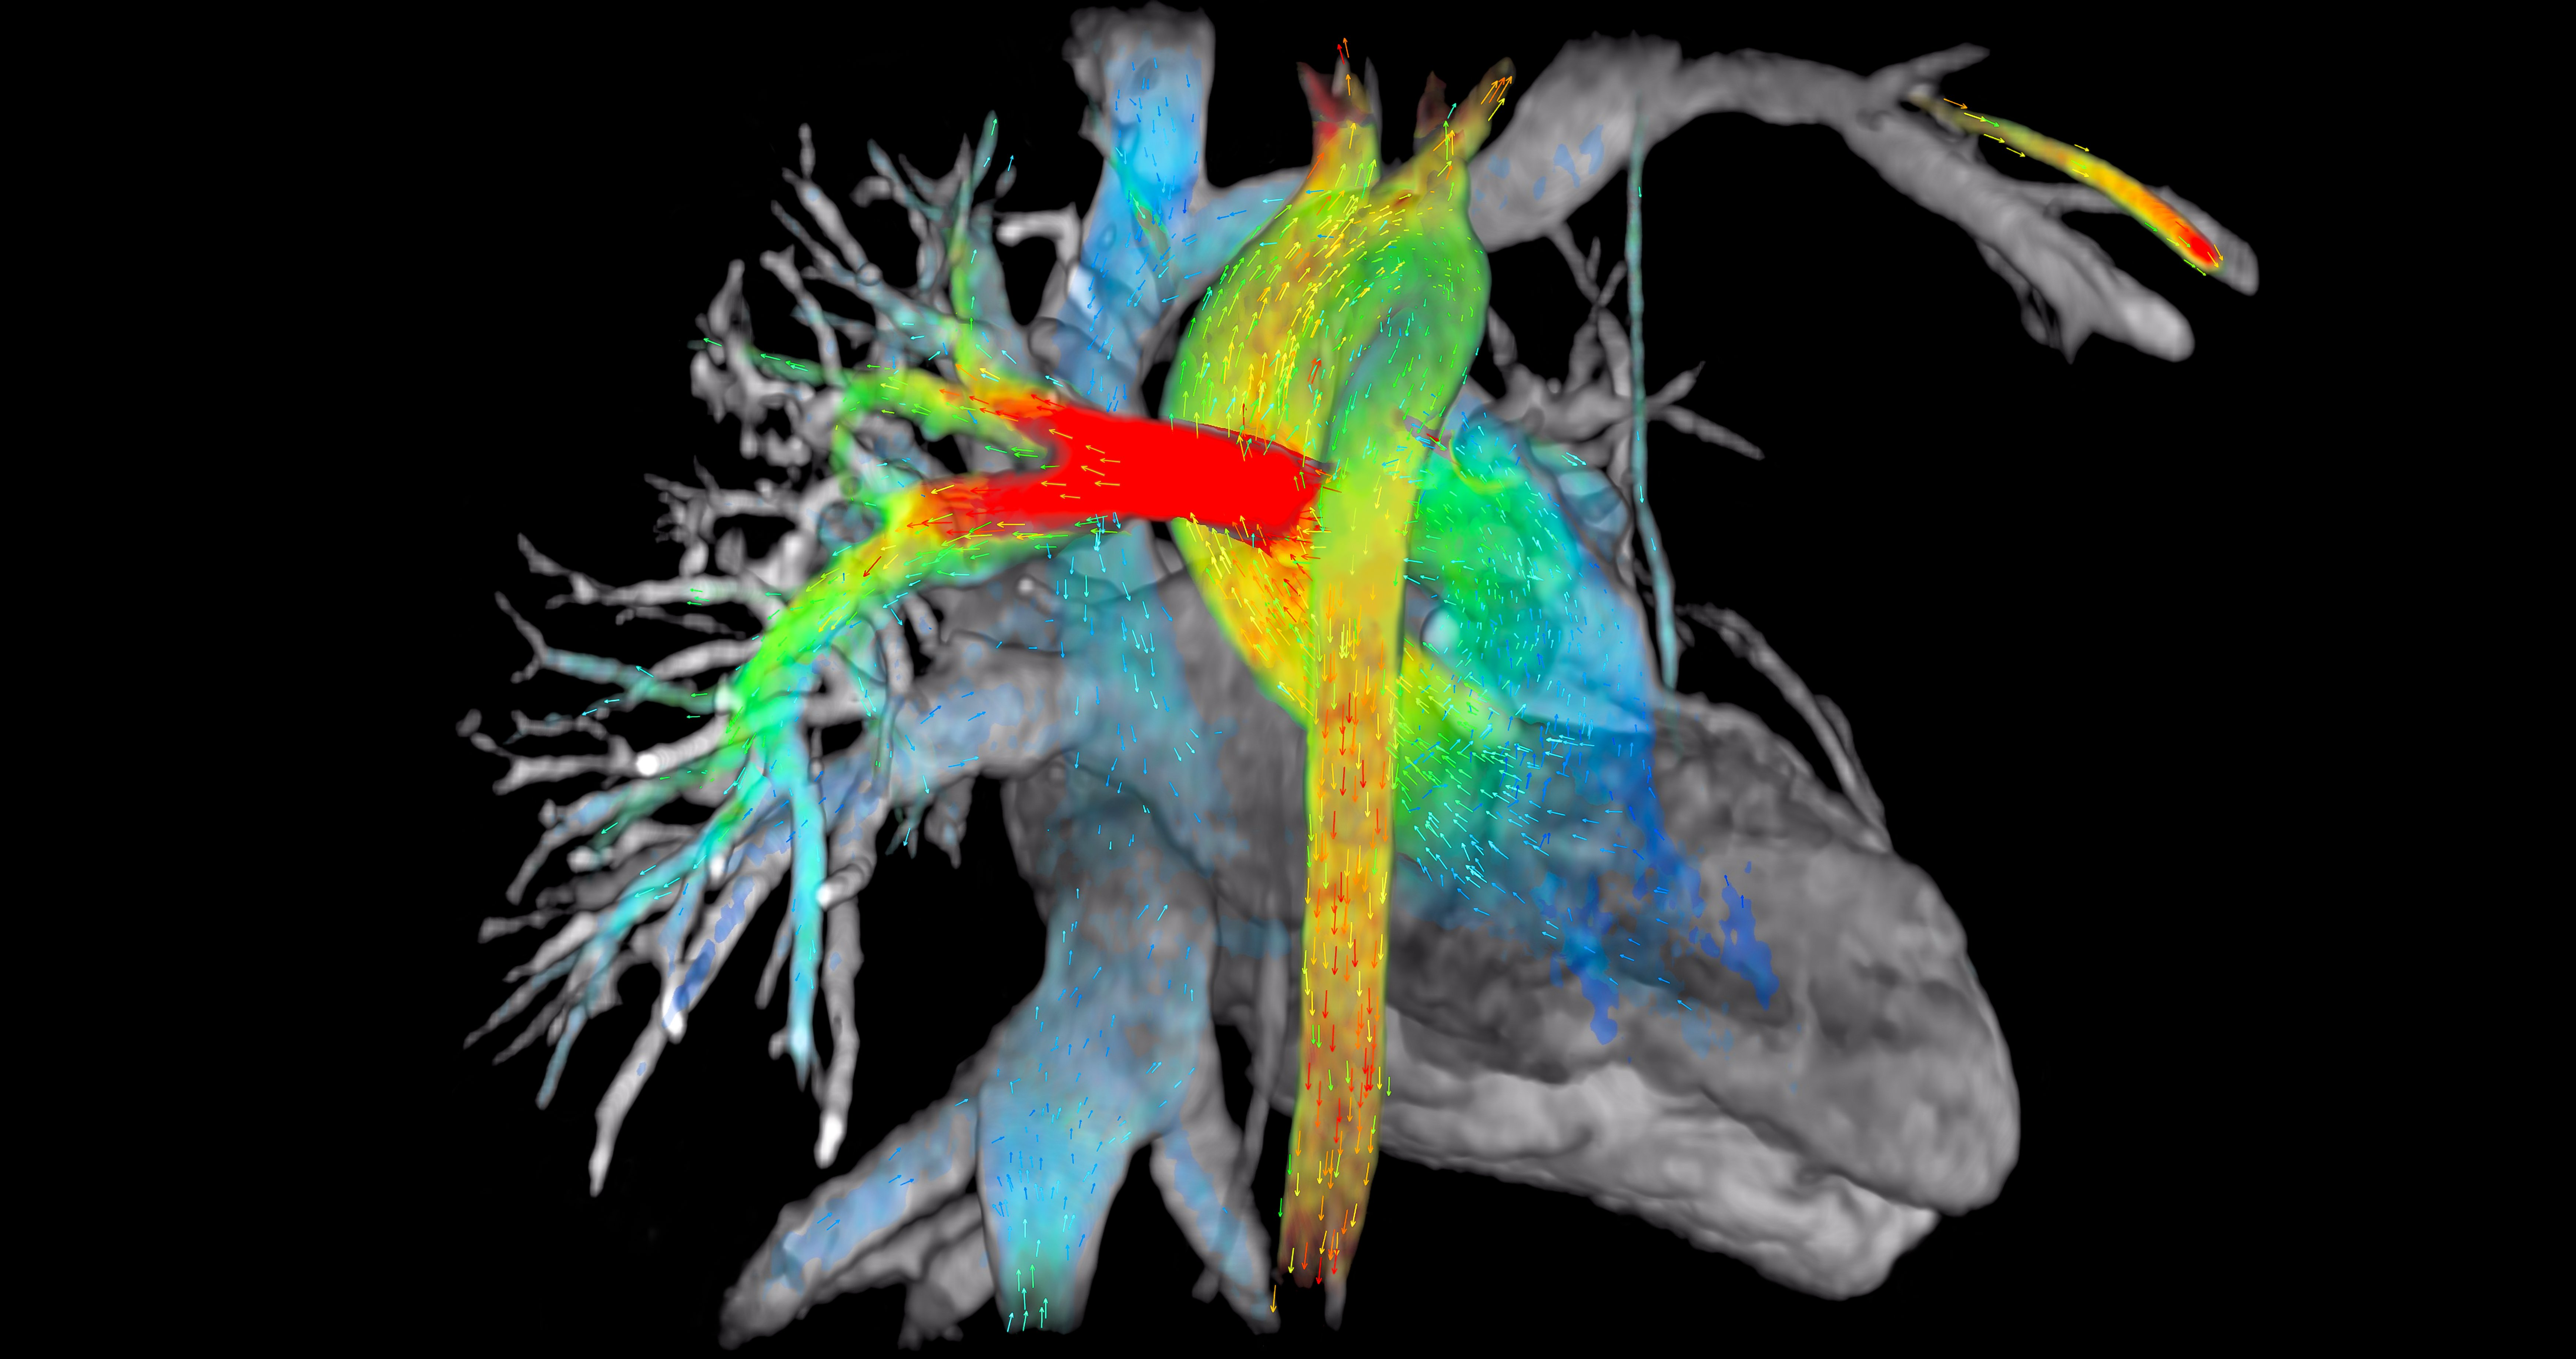 Most Innovative New Cardiac Imaging Technology At Rsna